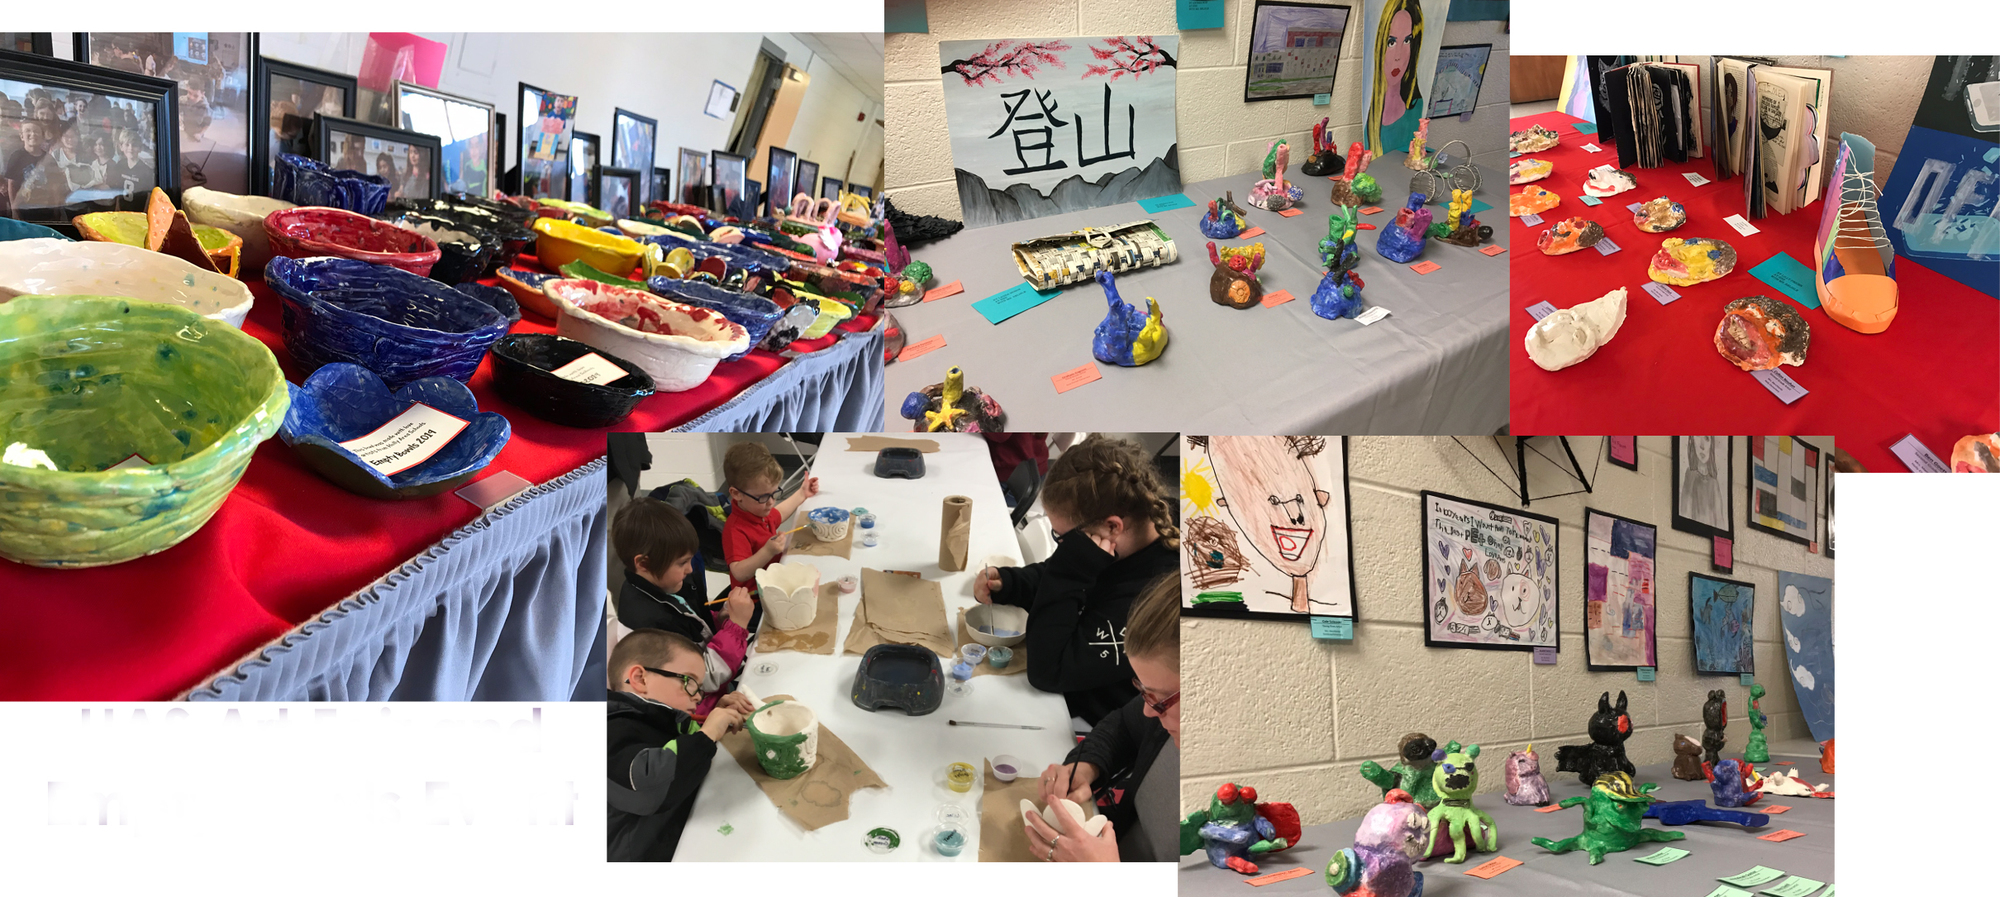 HAS Art Fair and Empty Bowls Event 2019 with pictures of painted bowls, students and parents painting a bowl, and artwork on tables and walls.